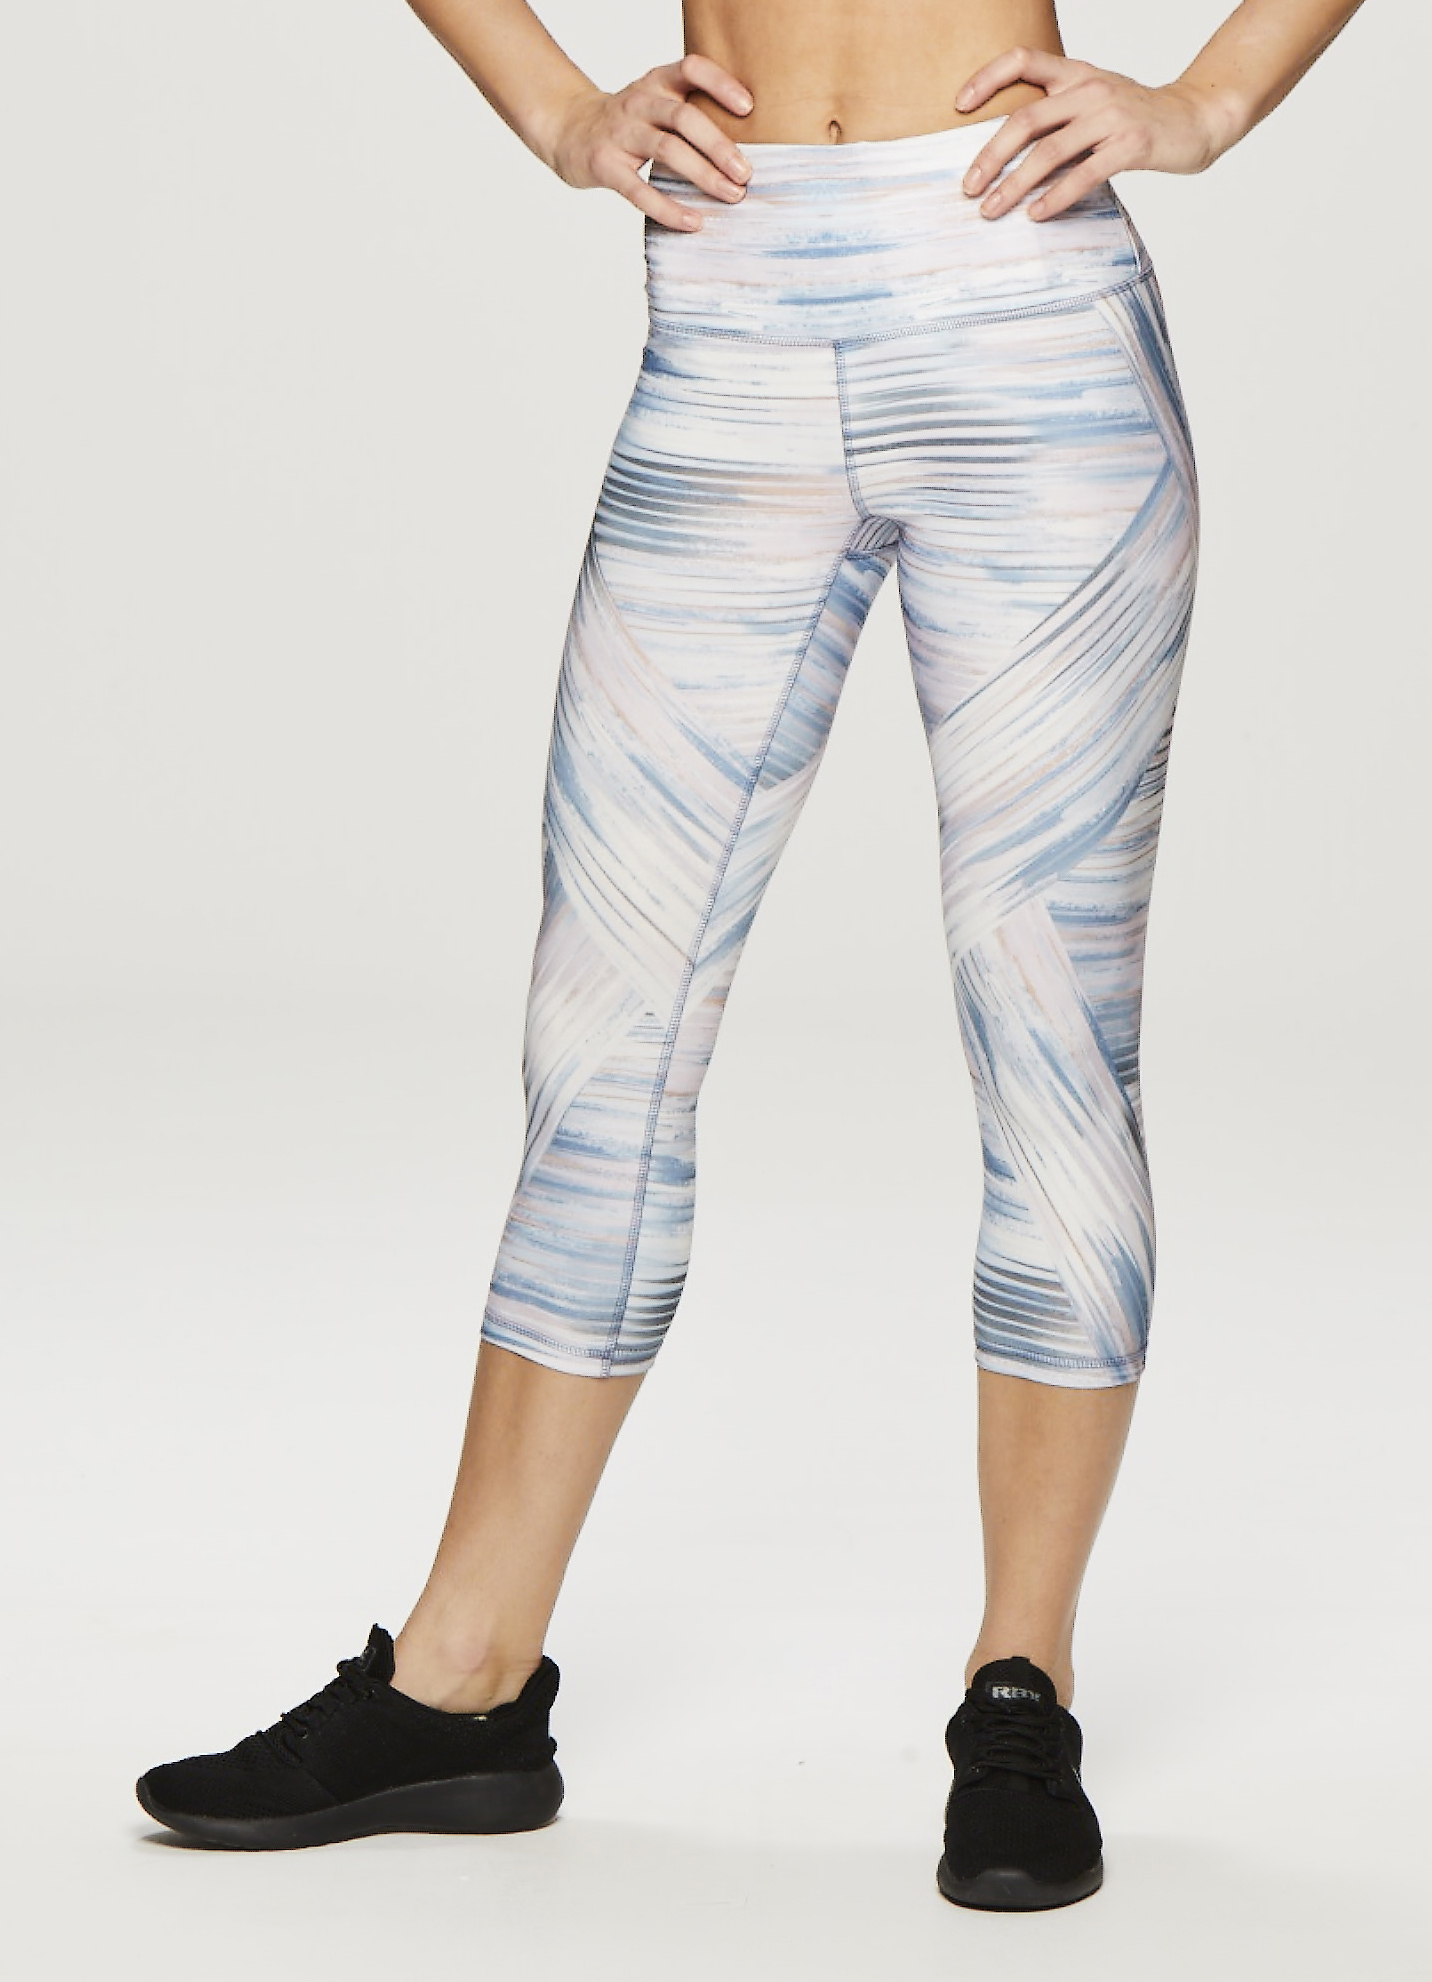 Women's Active Printed Capri Leggings